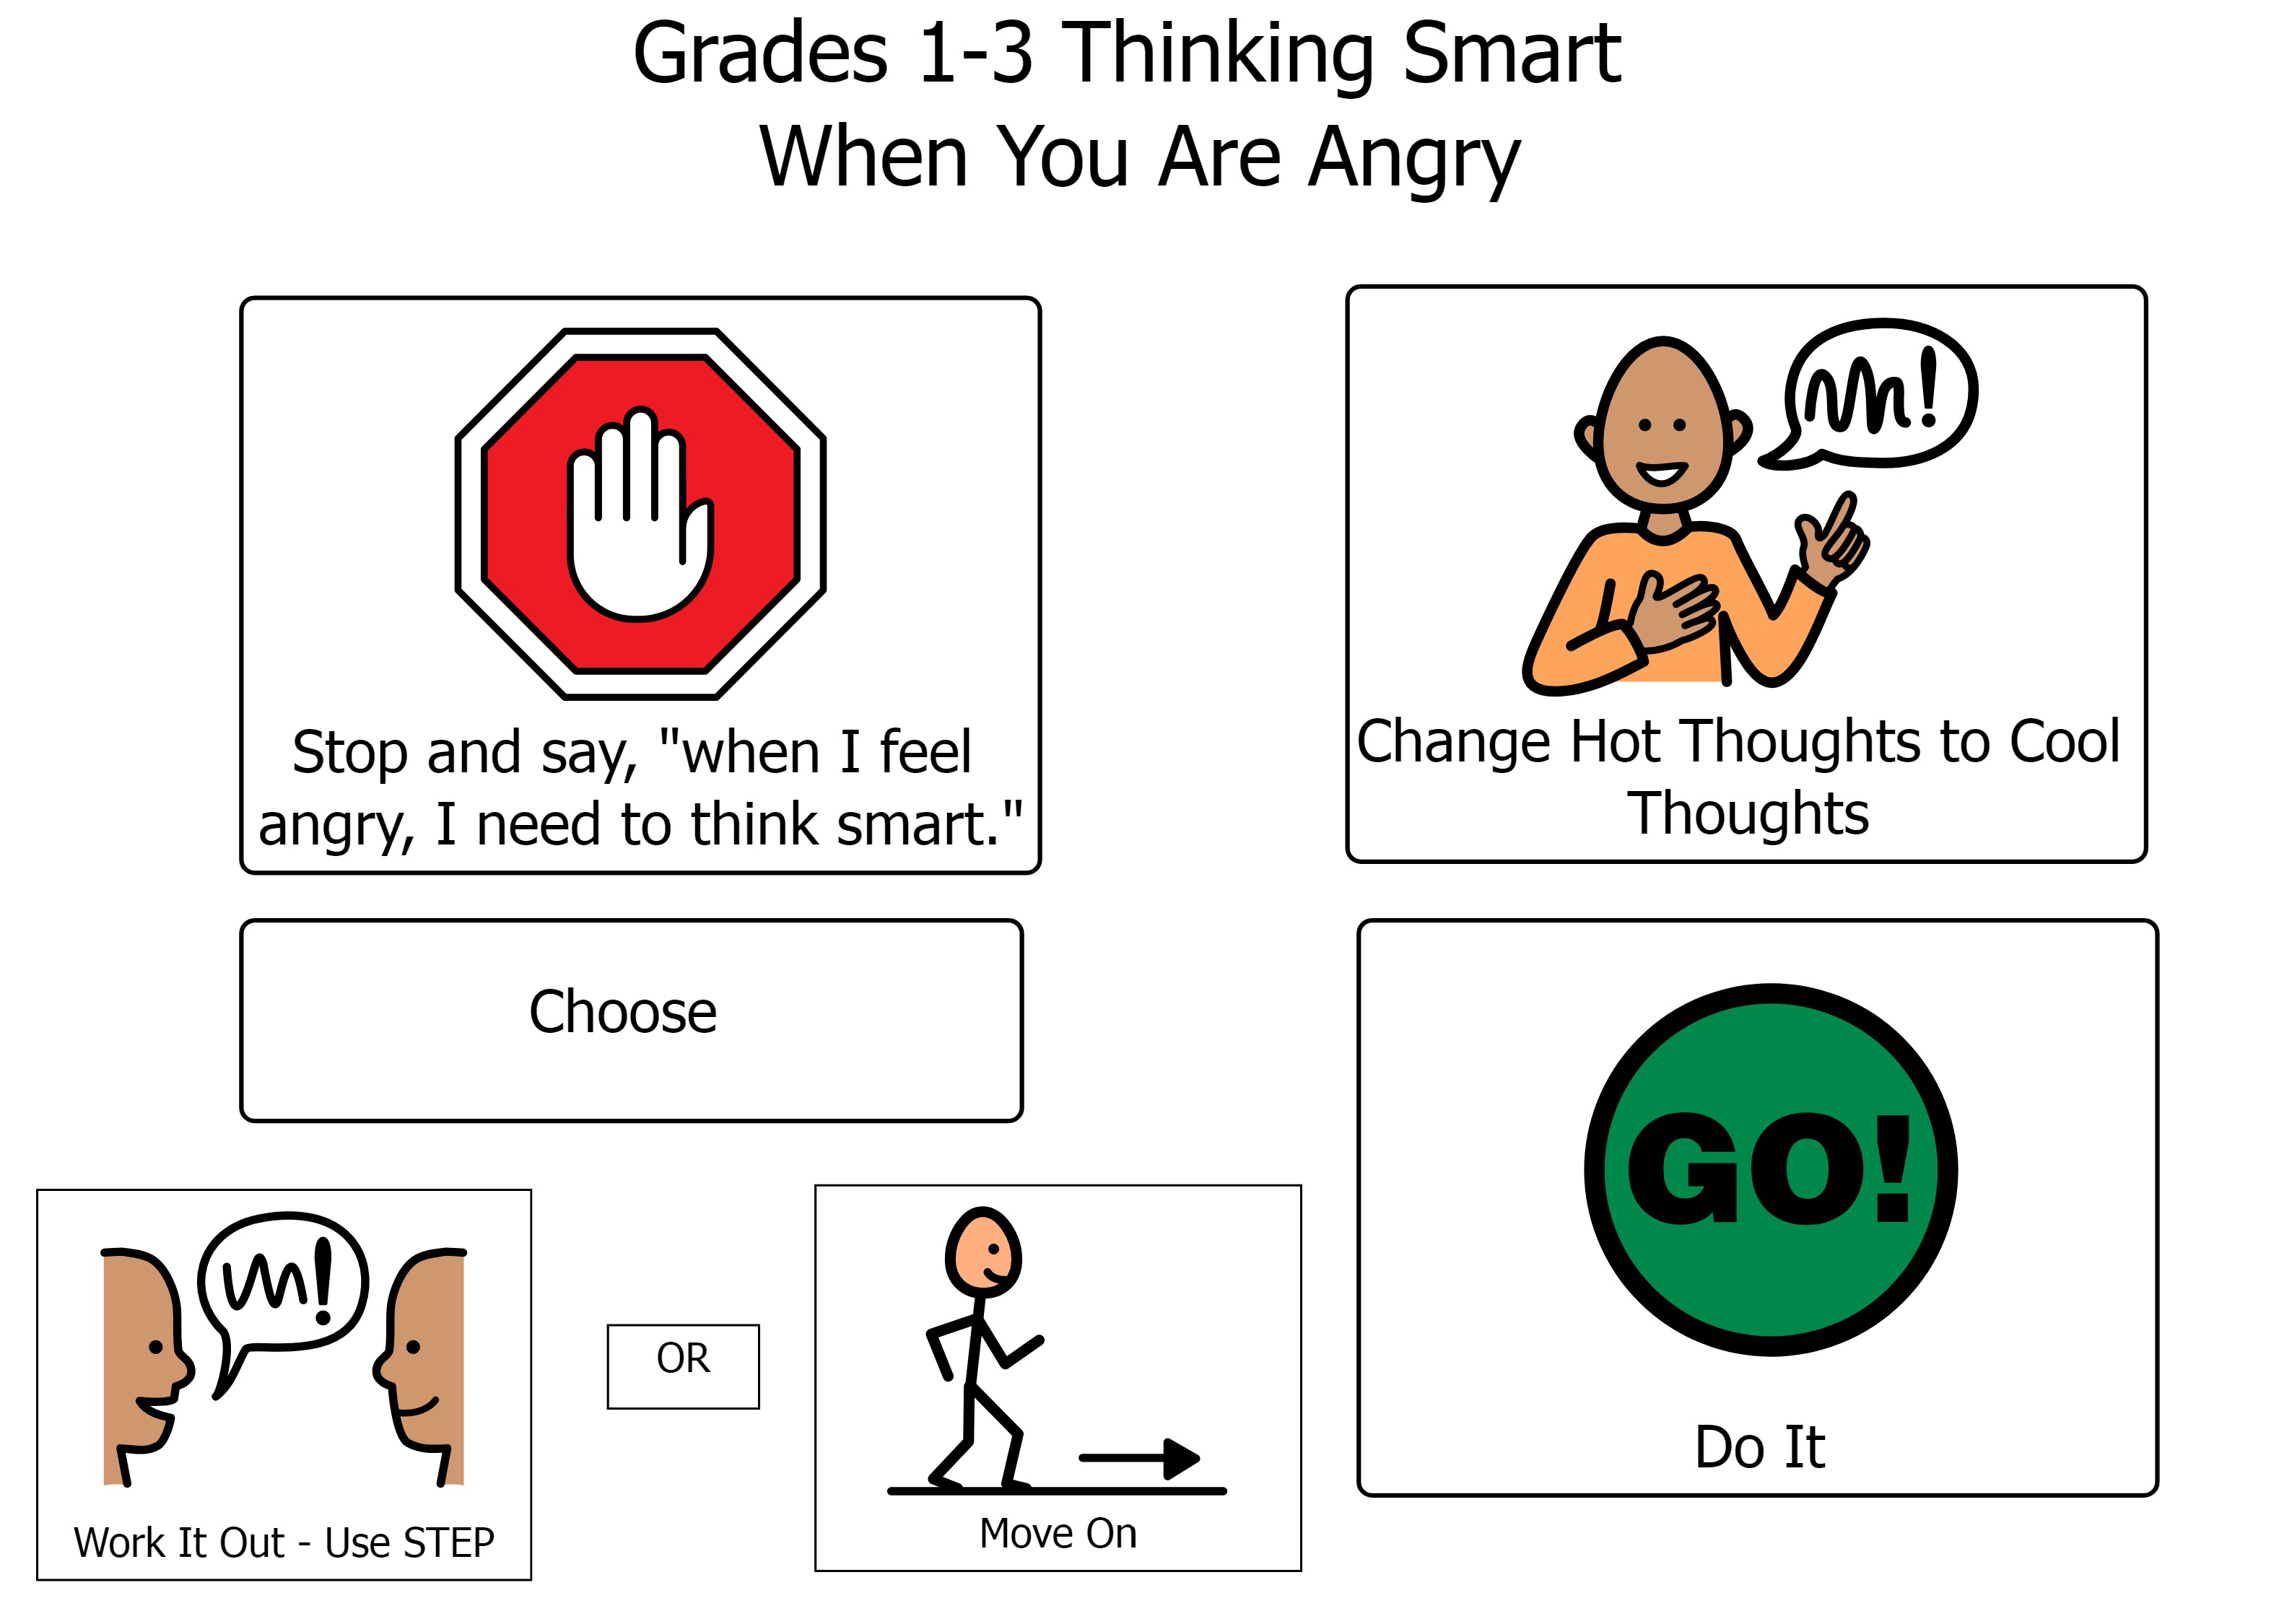 Grades 1-3 Thinking Smart When You Are Angry